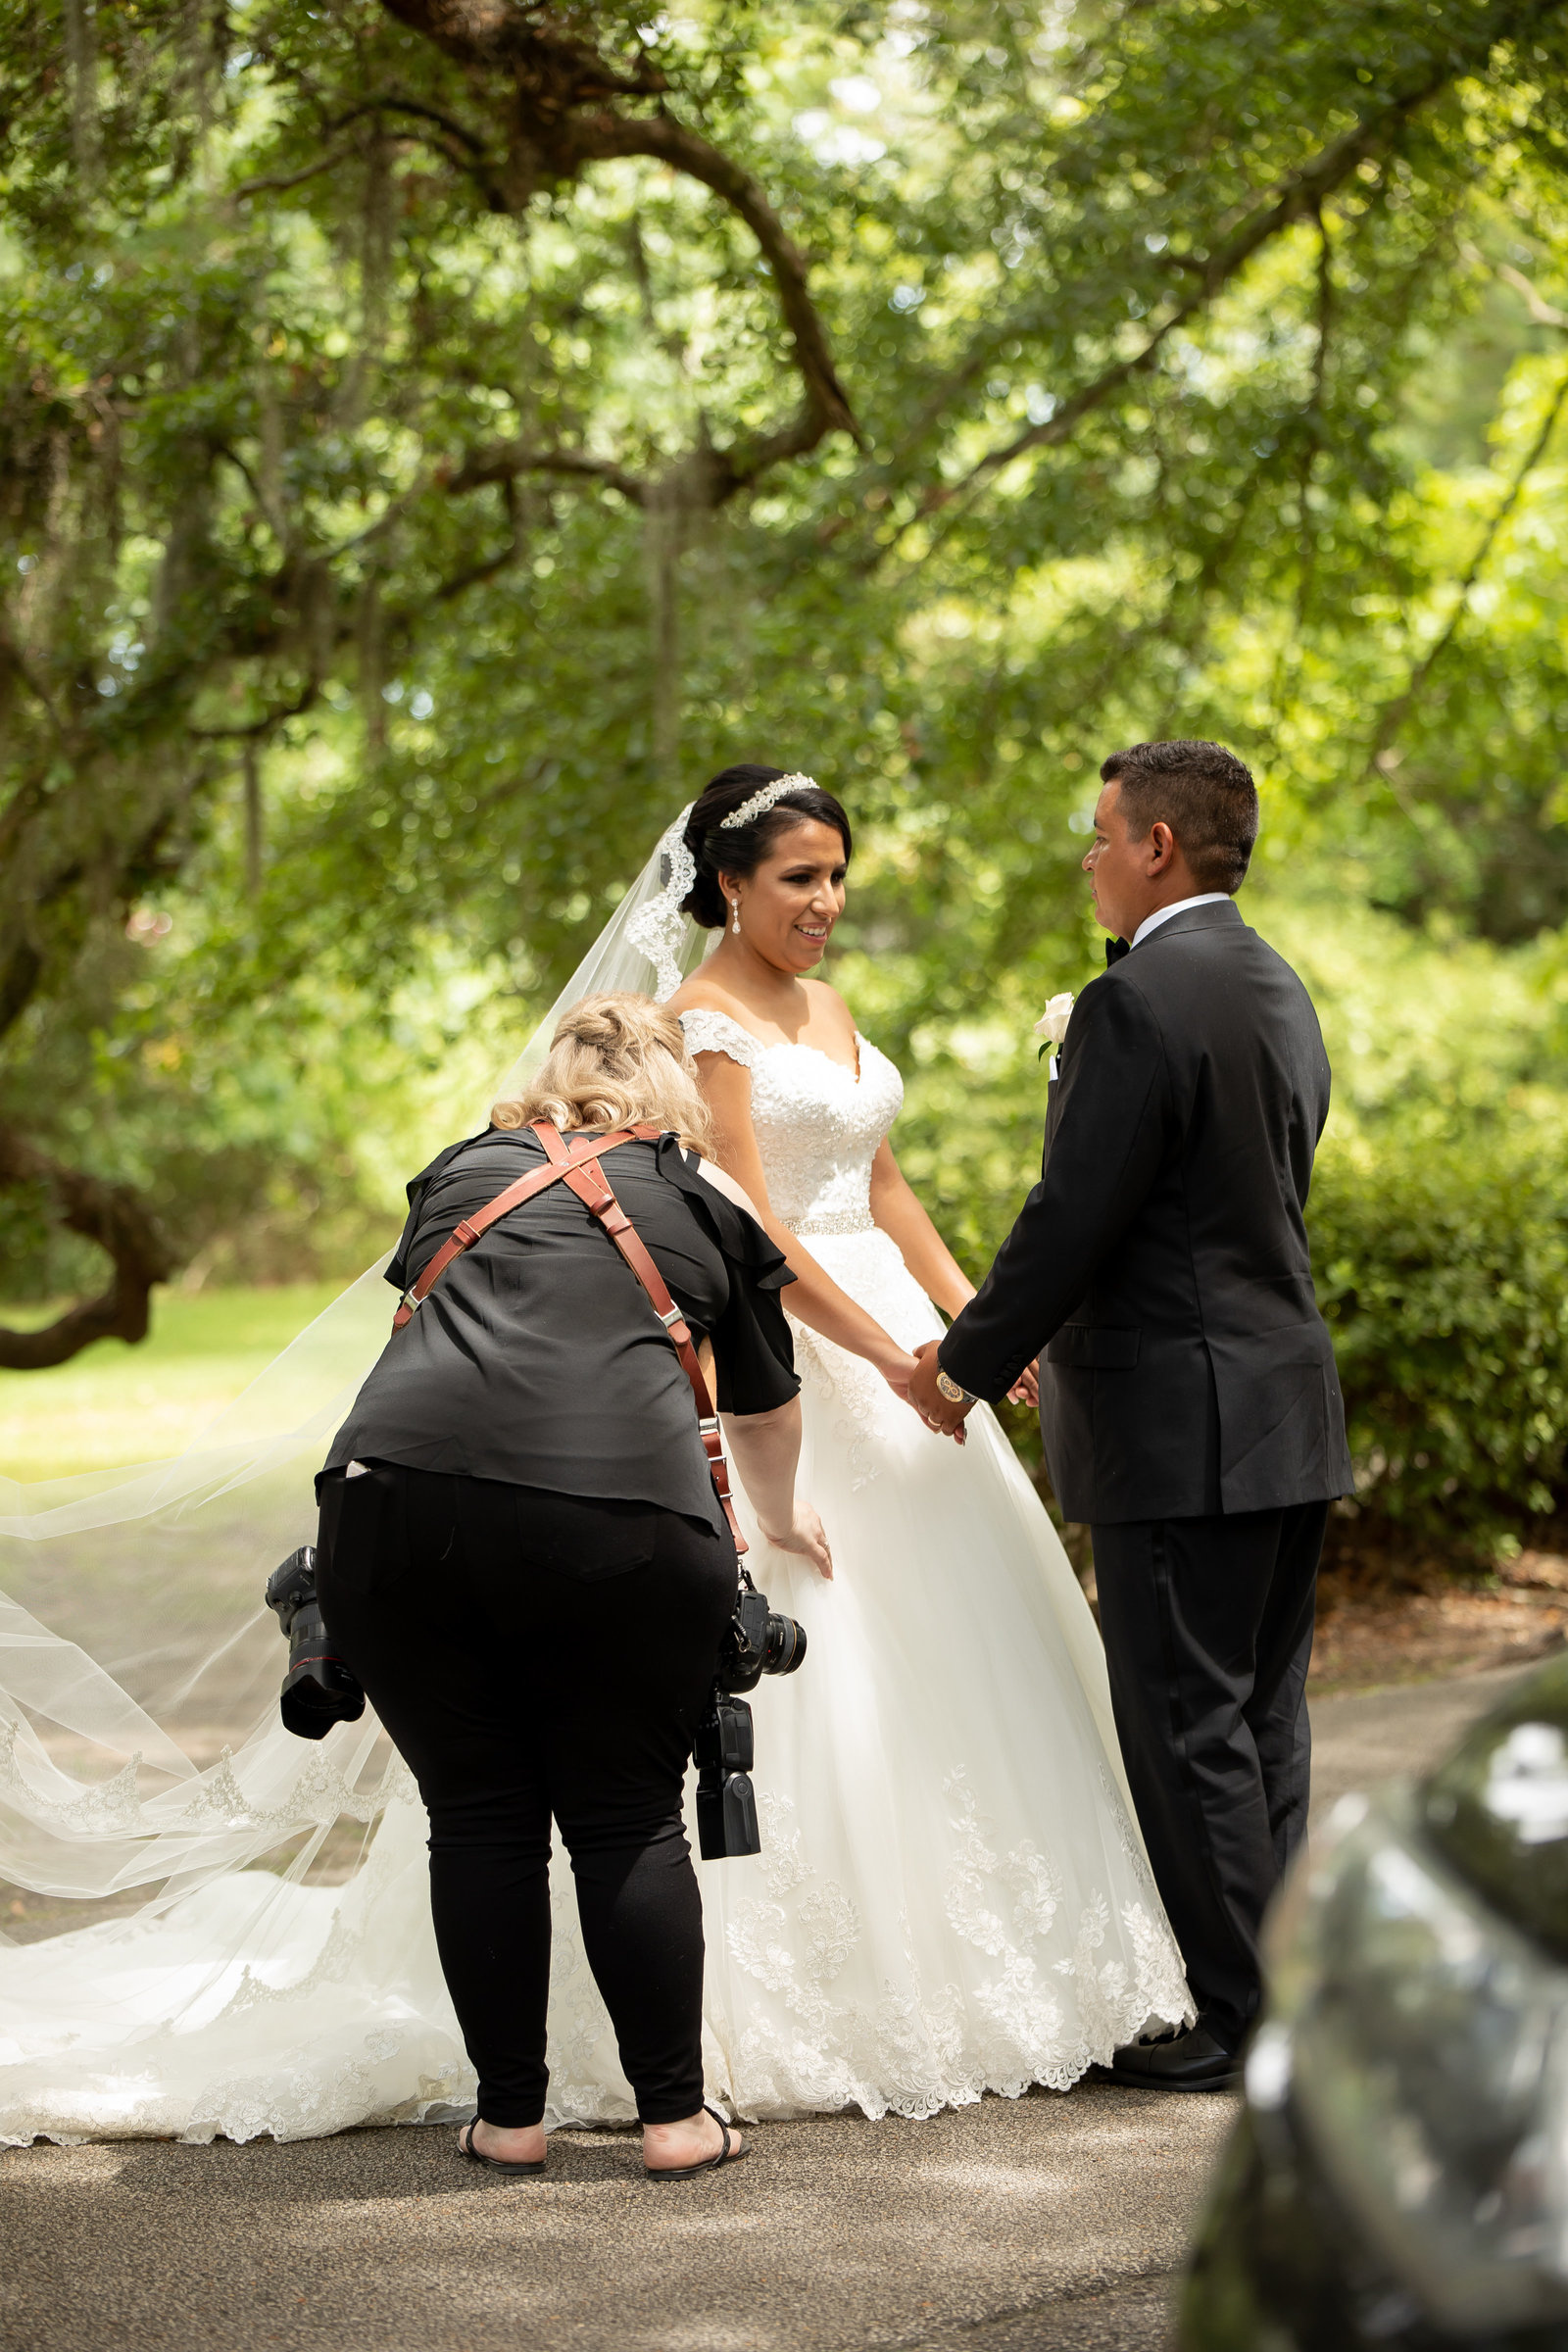 Kayce_Stork_Photography_Team_Weddings880